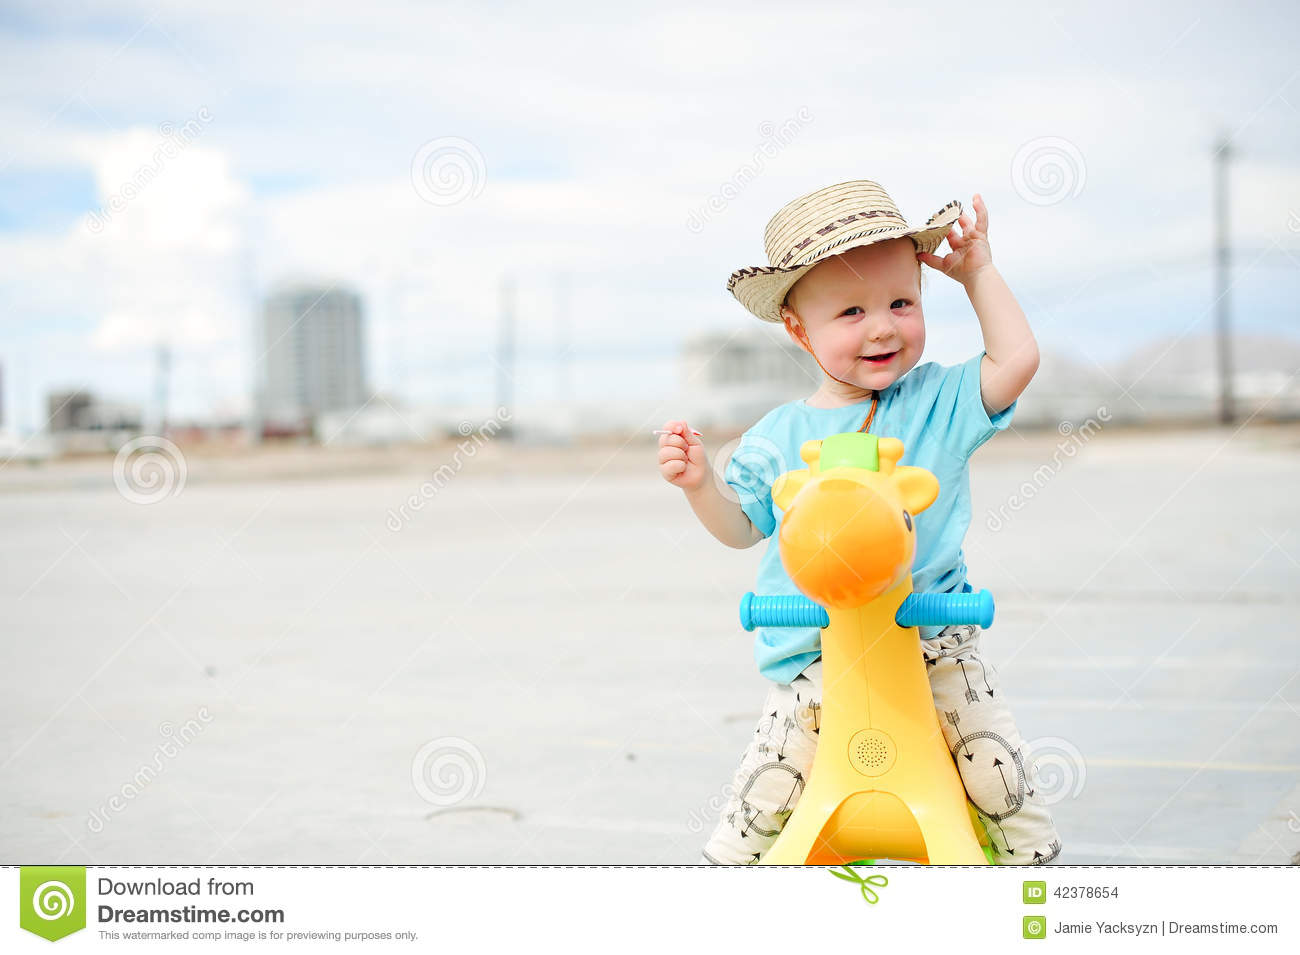 Adorable one year old boy on a plastic horse wearing a cowboy hat. 59df6b791a8